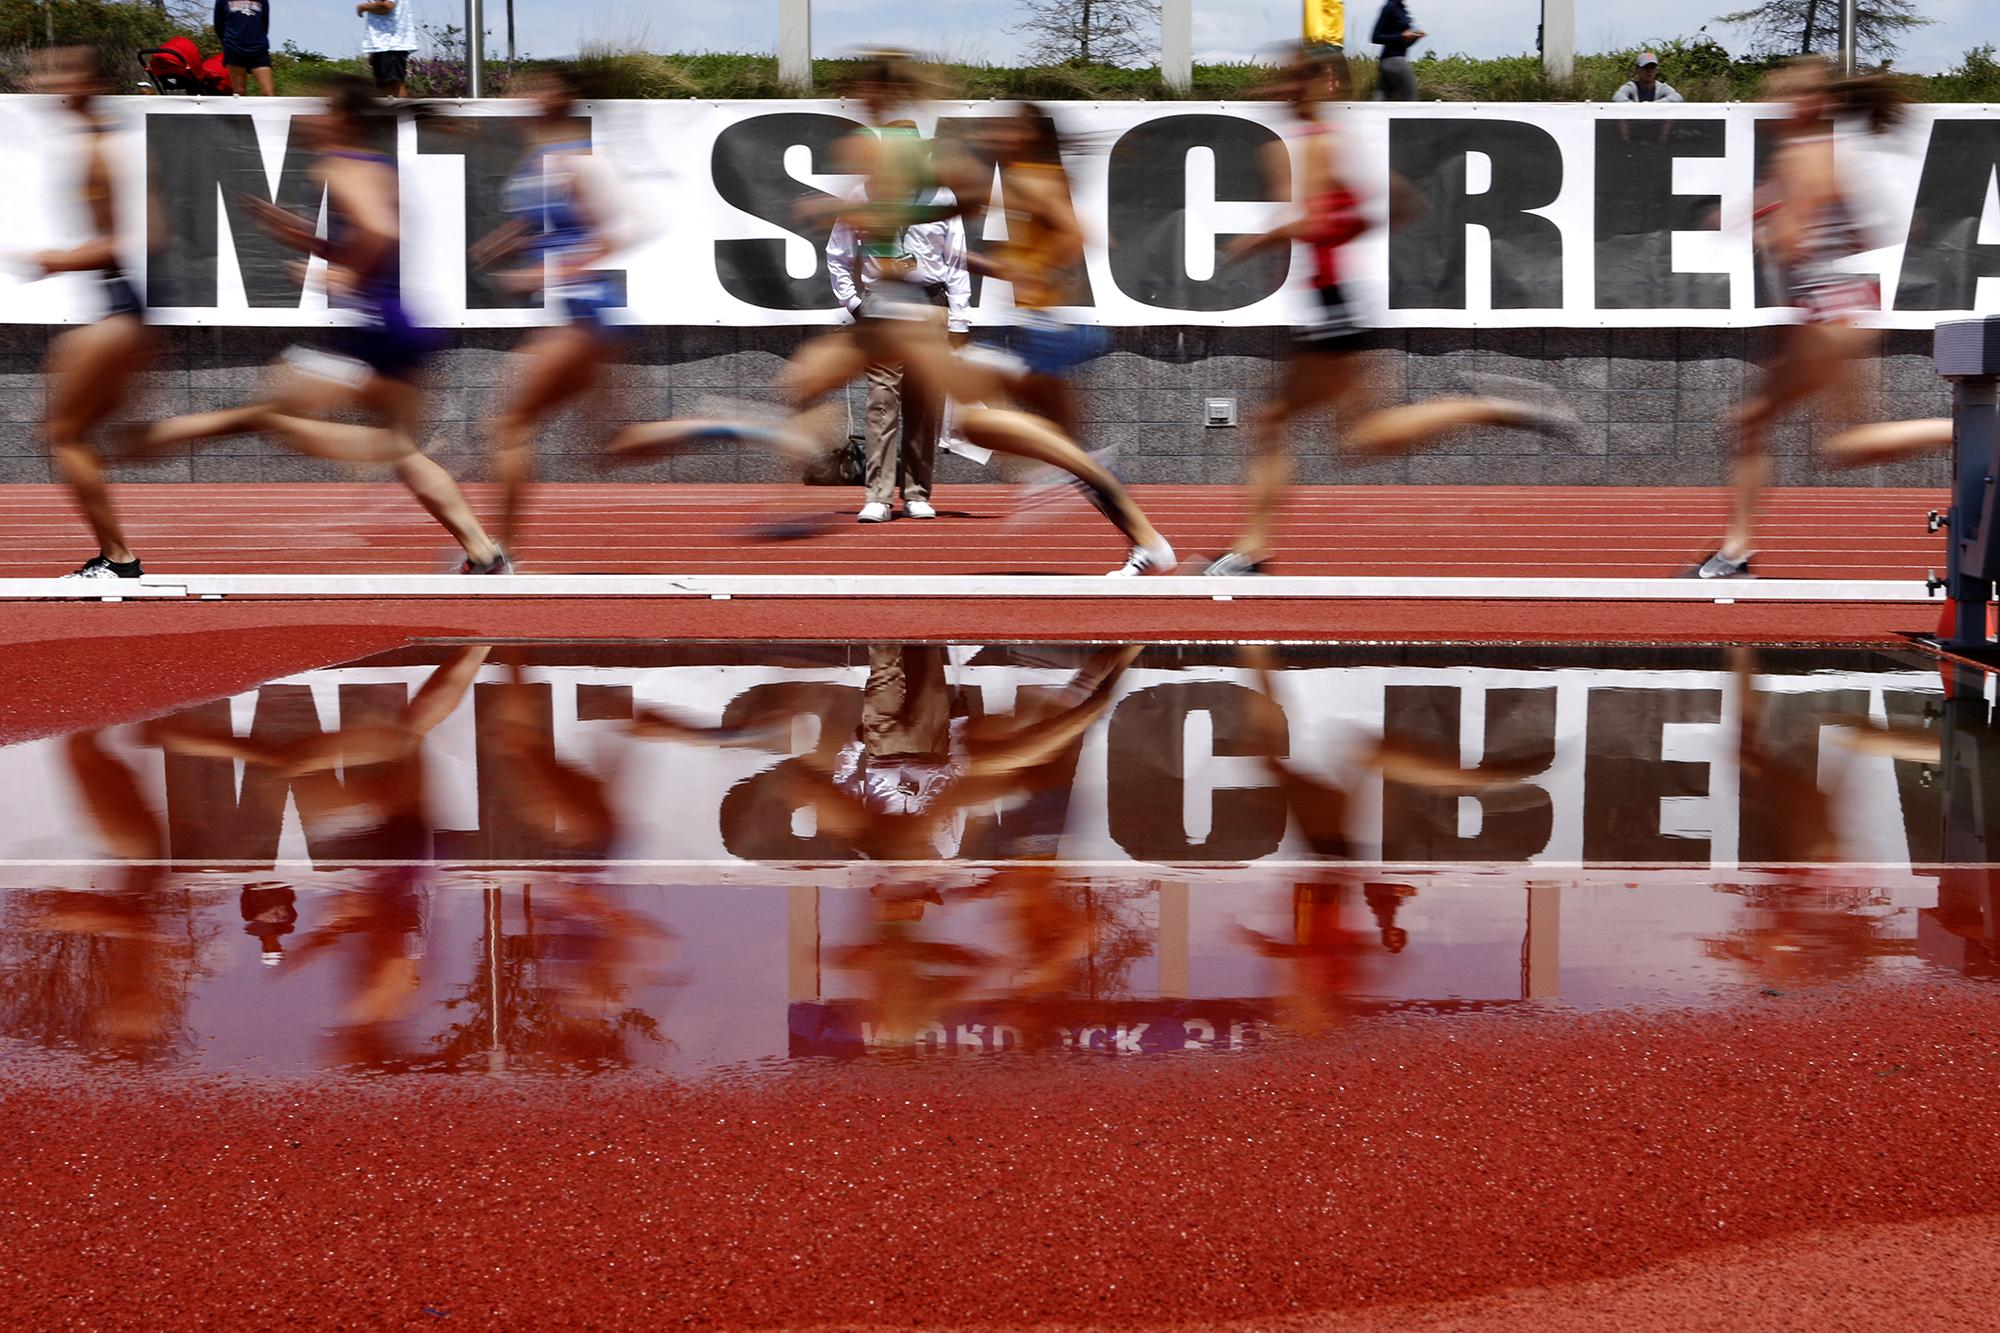 TORRANCE, CALIFORNIA - APRIL 19: Runners are seen reflected in the water obstacle for the steeplechase as they compete in the collegiate women's section of the 1500 meter run on the first day of the 61st Mt. SAC Relays at Murdock Stadium at El Camino College on April 19, 2019 in Torrance, California. (Photo by Katharine Lotze/Getty Images)